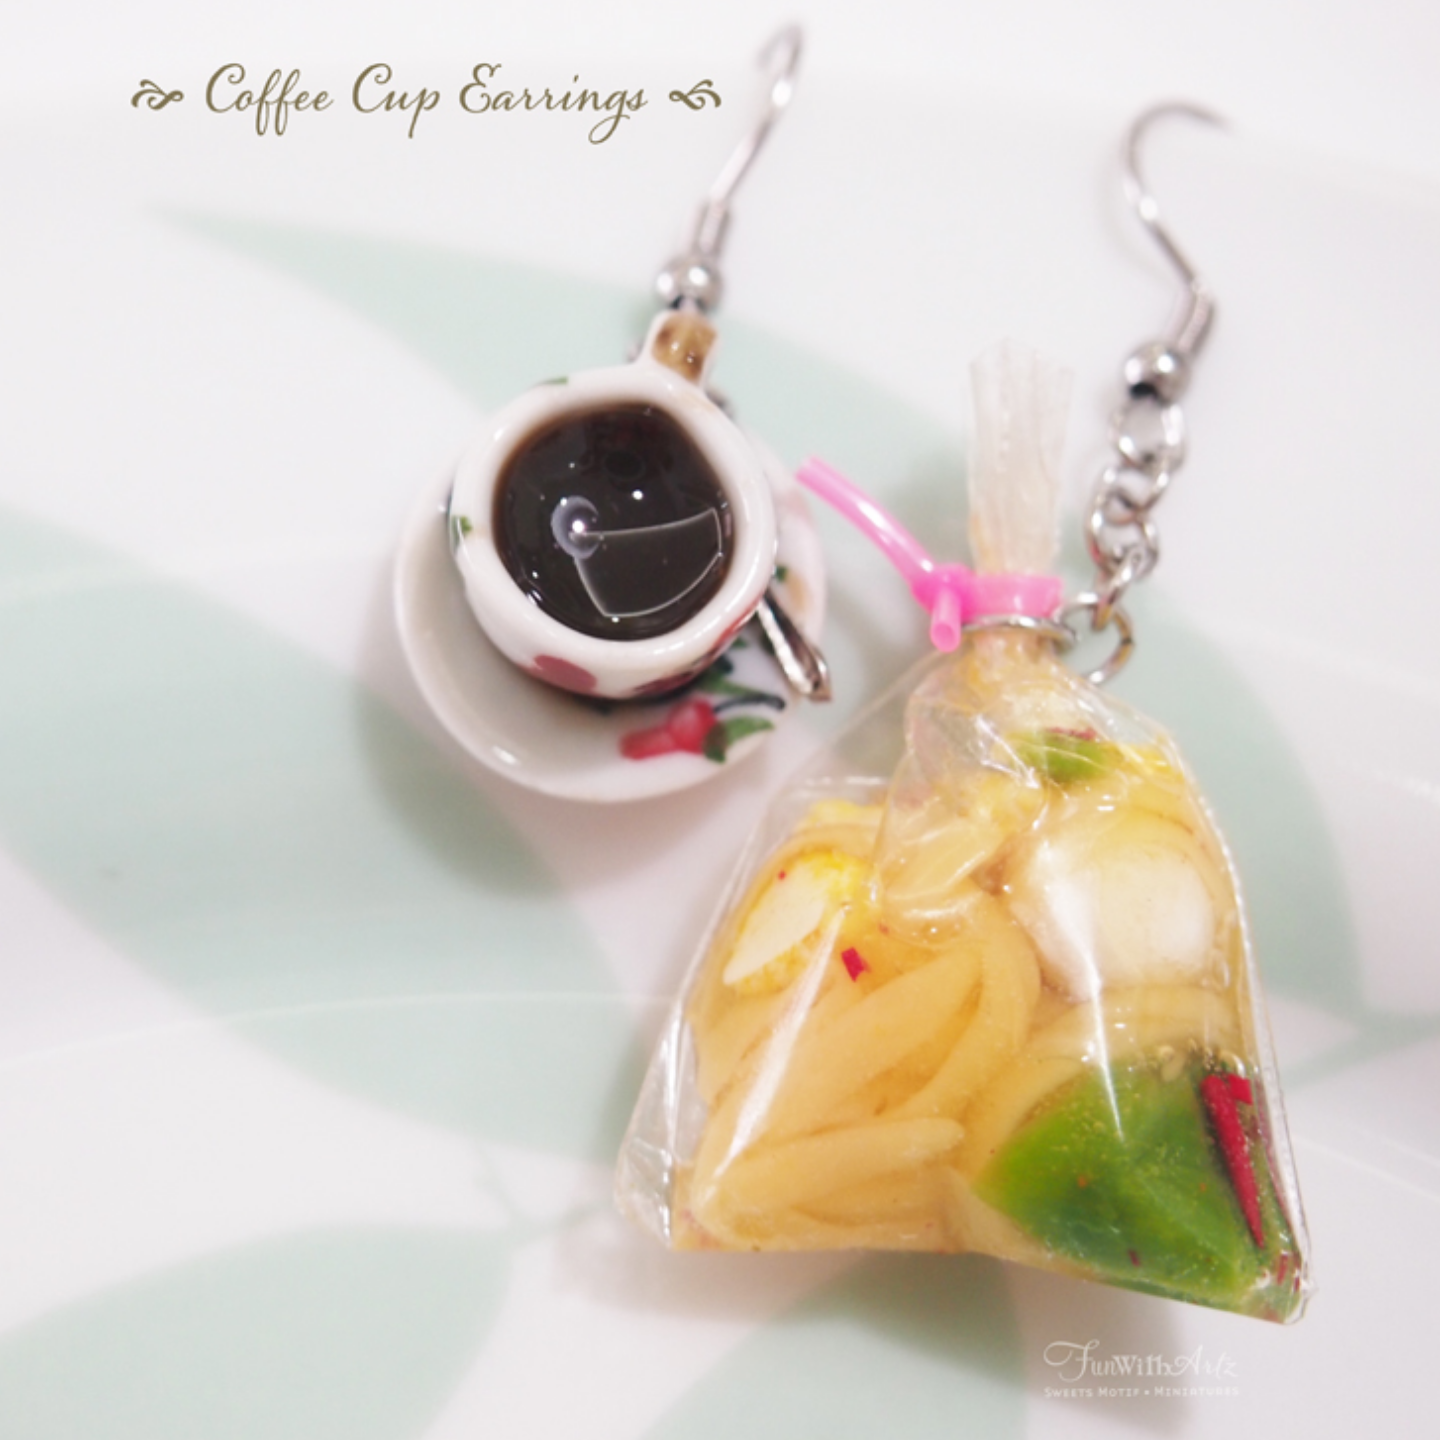 Miniature Food - Meepok Da Bao Bag with Kopi Earrings